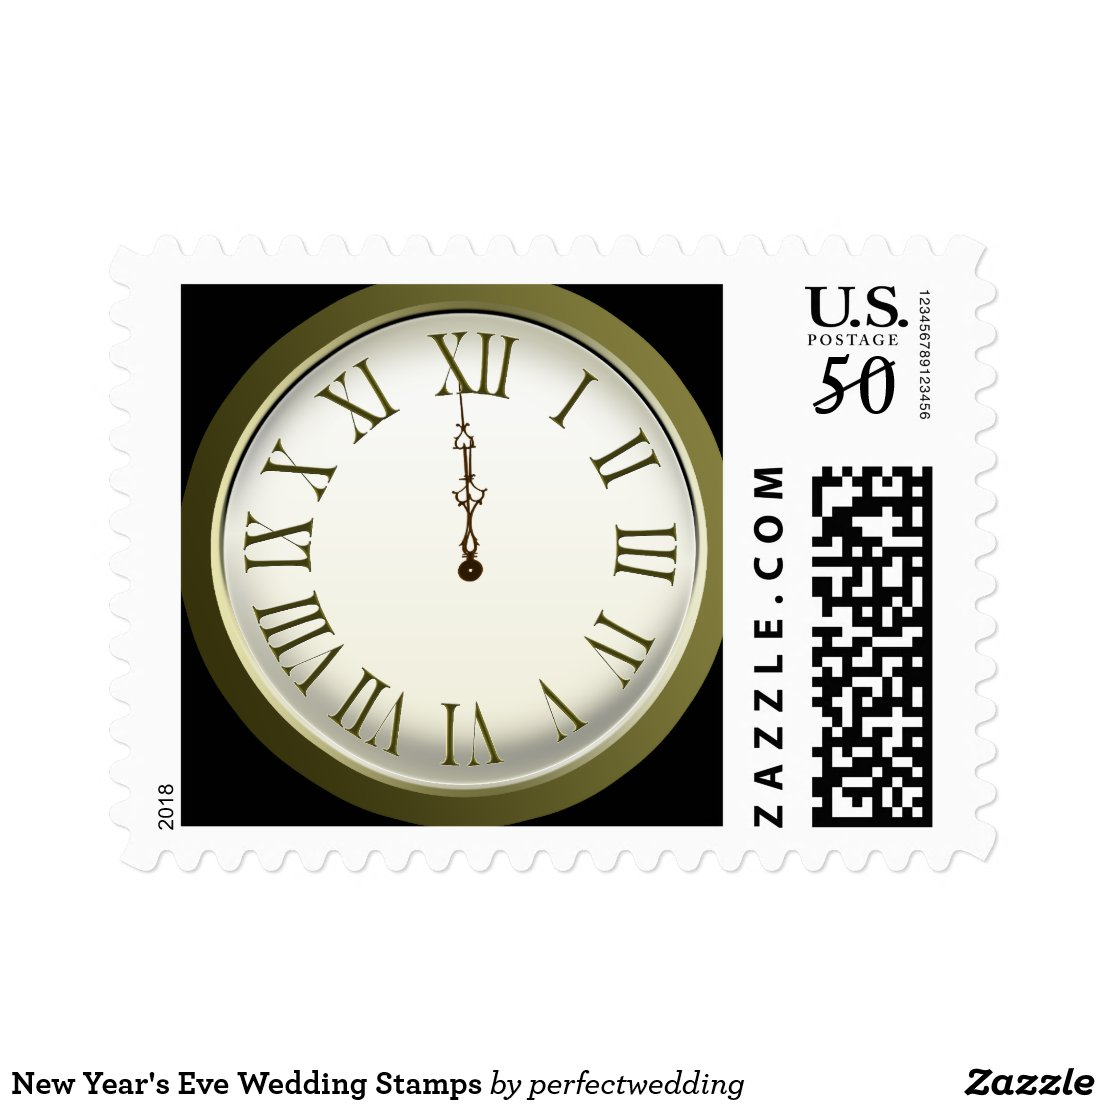 New Year's Eve Wedding Stamps